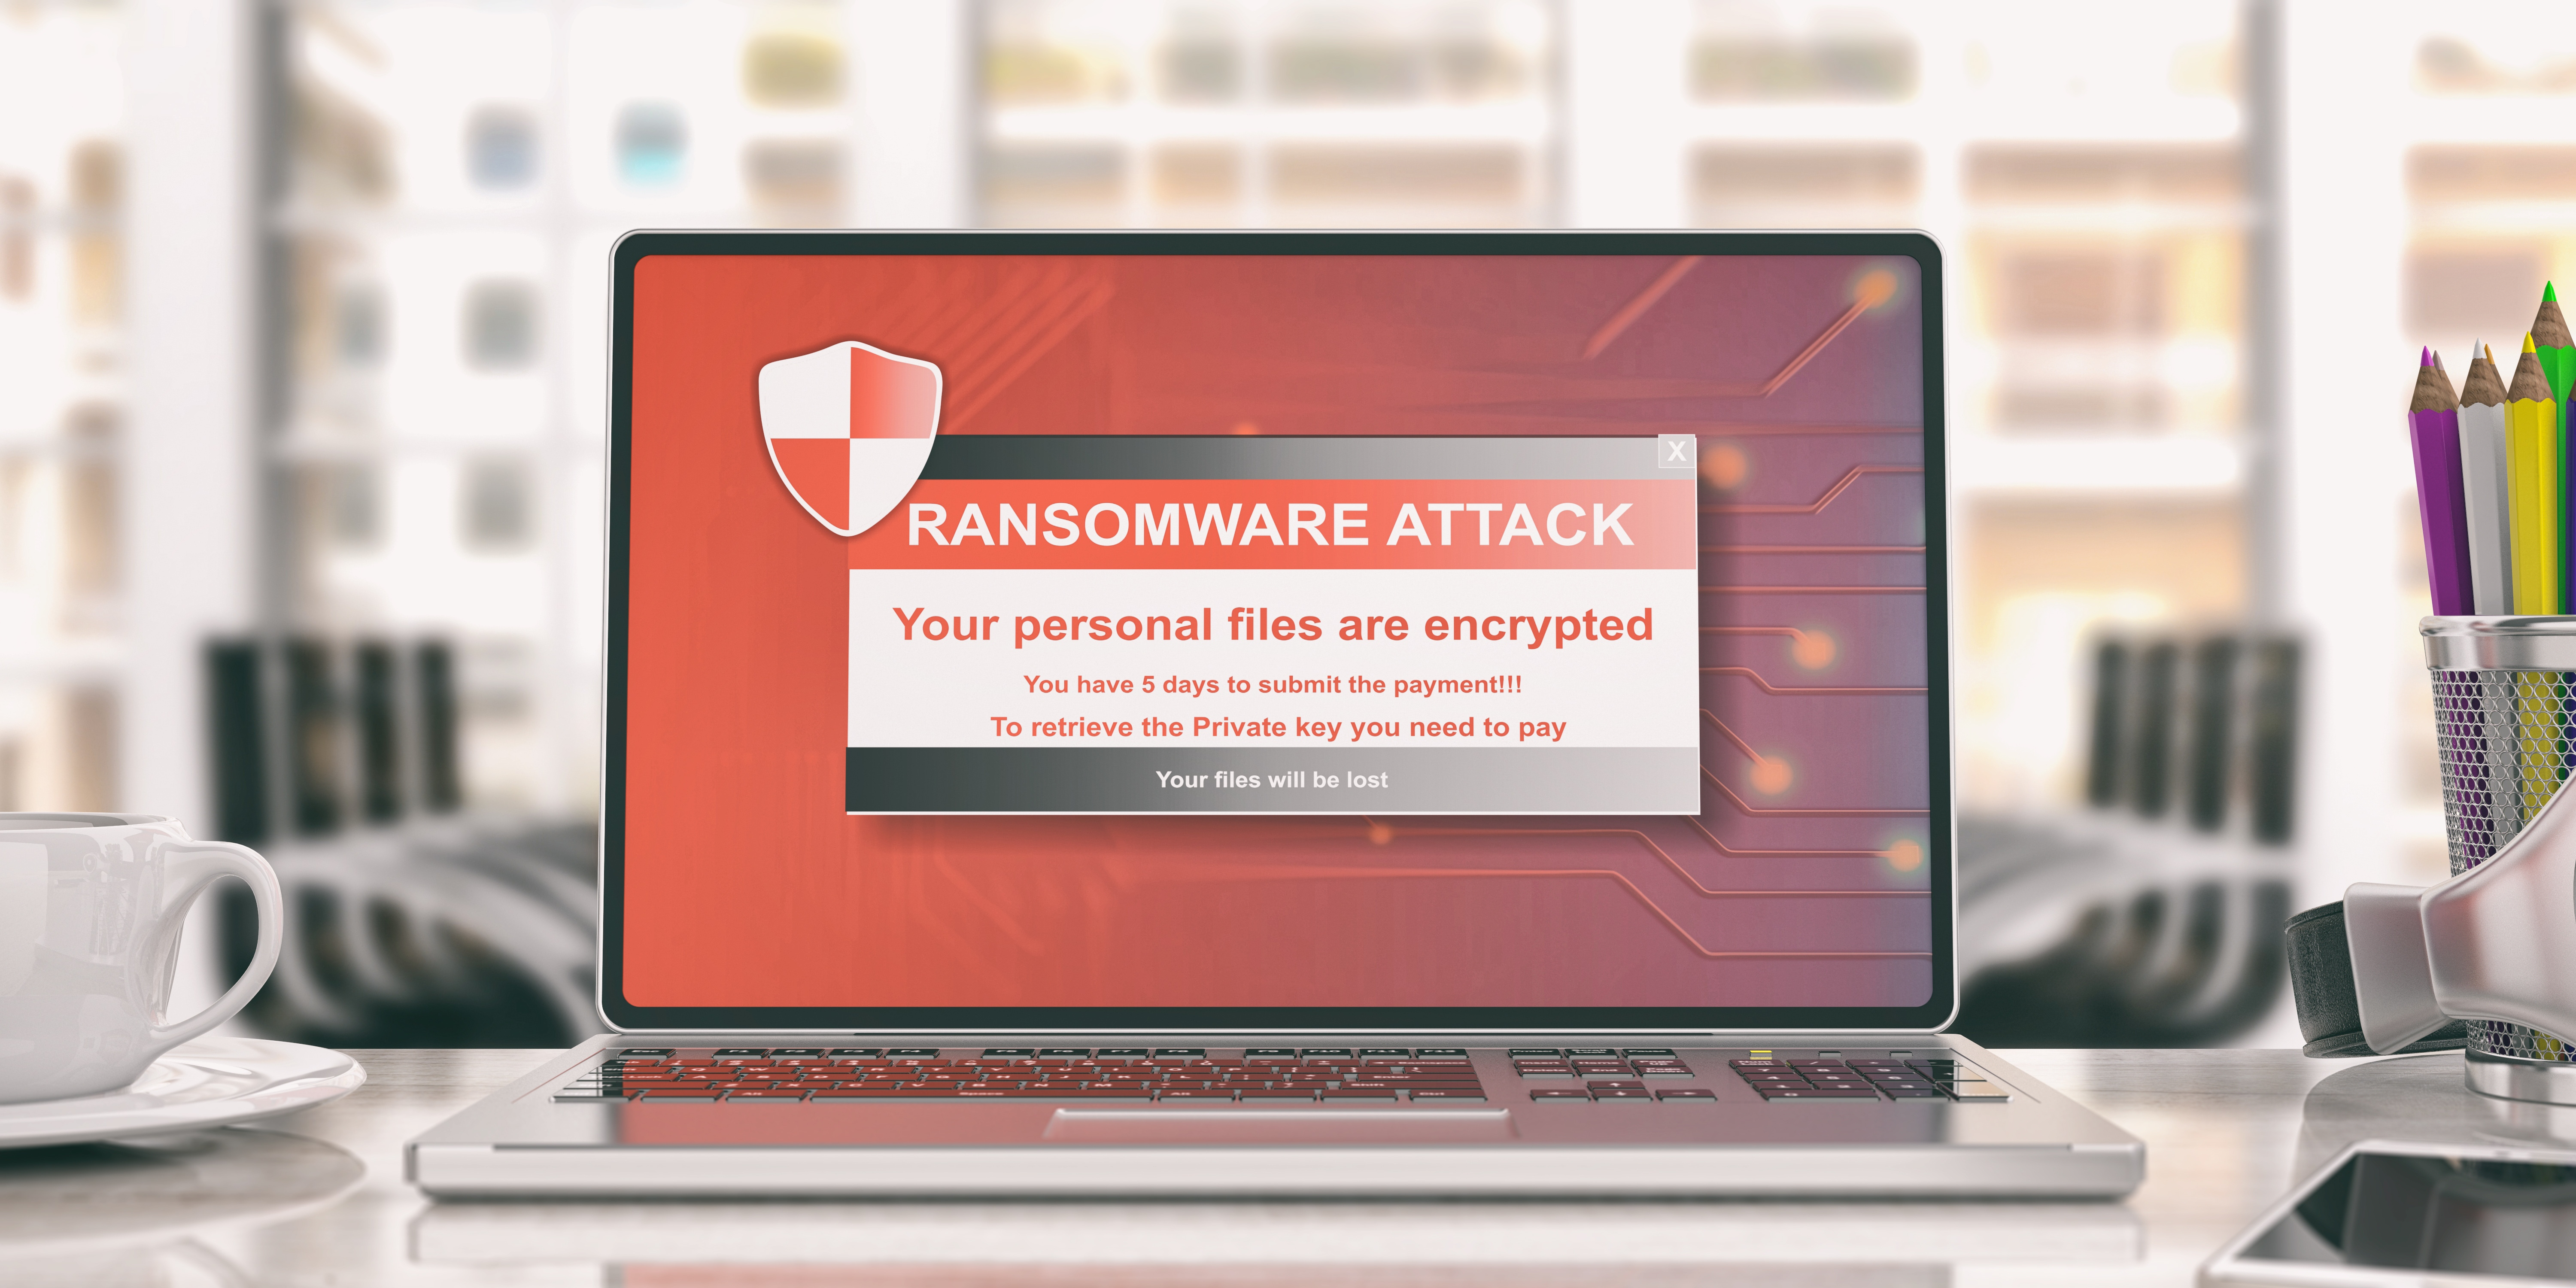 Ransomware open on laptop